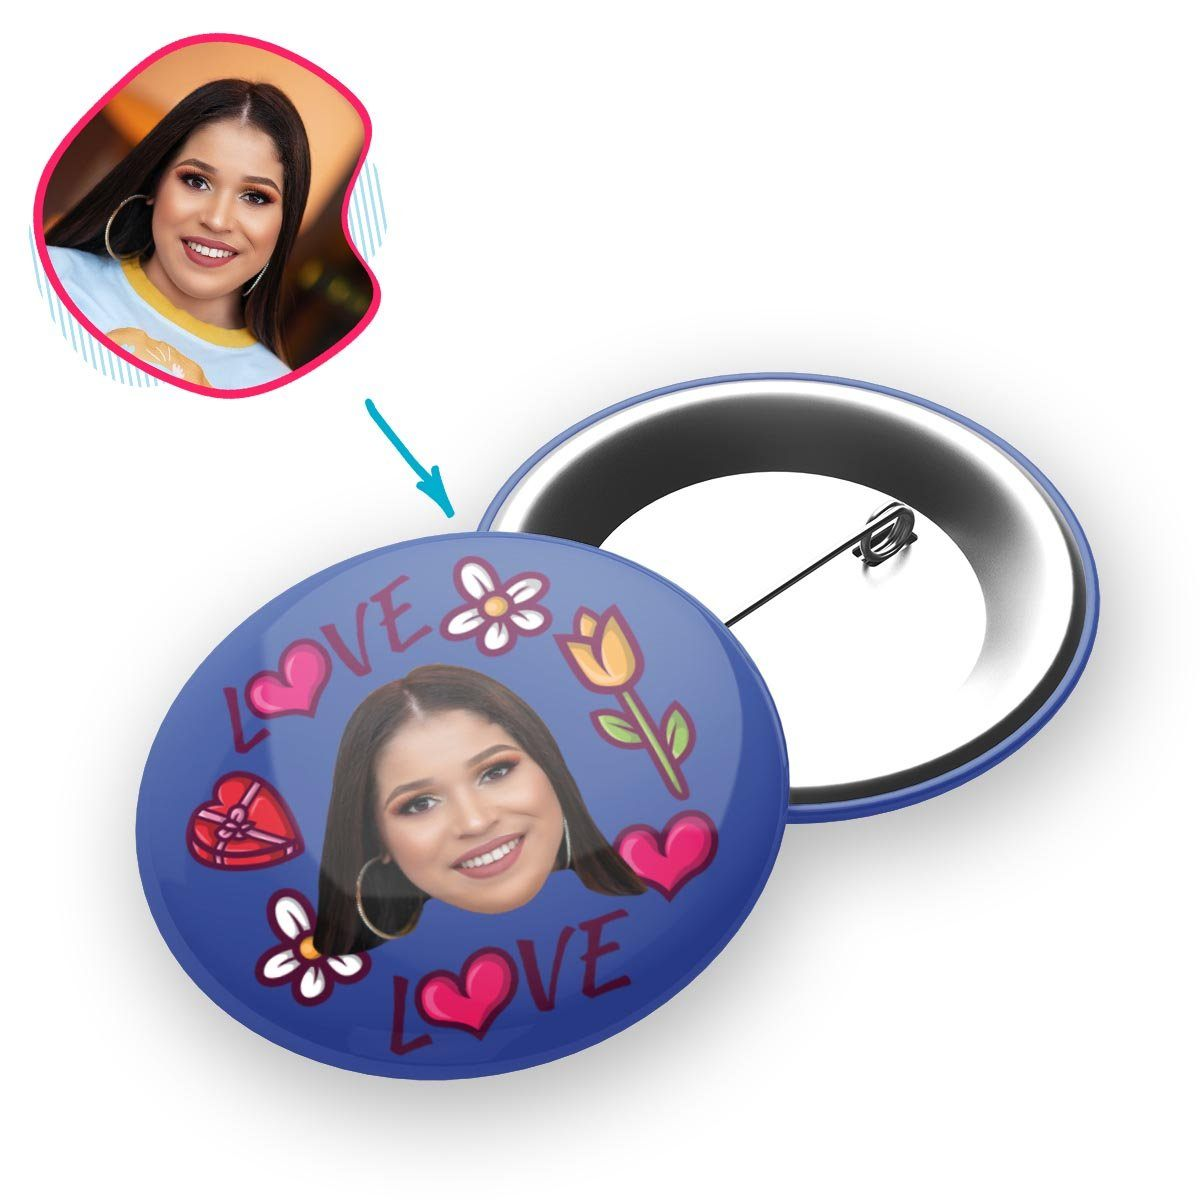 darkblue Hearts and Flowers pin personalized with photo of face printed on it